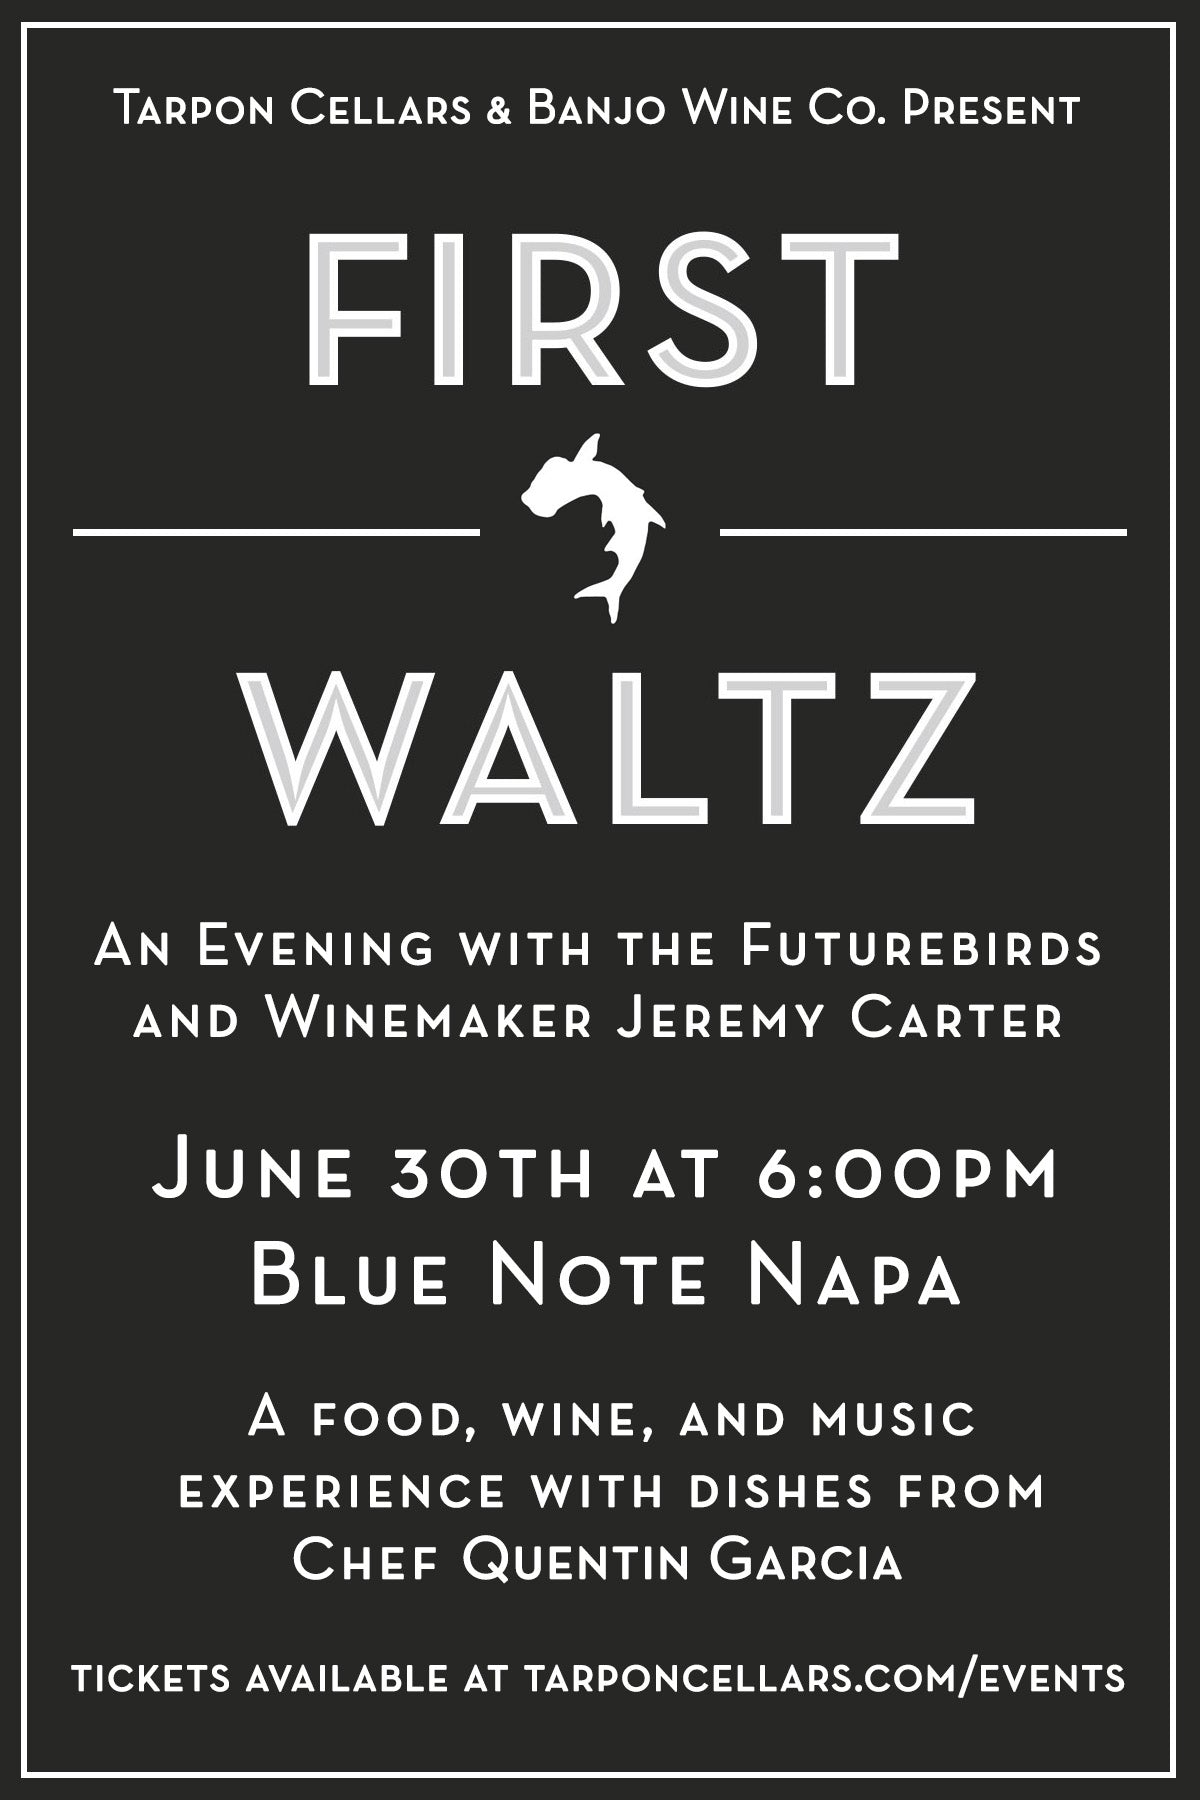 First Waltz: An Evening With The Futurebirds and Winemaker Jeremy Carter